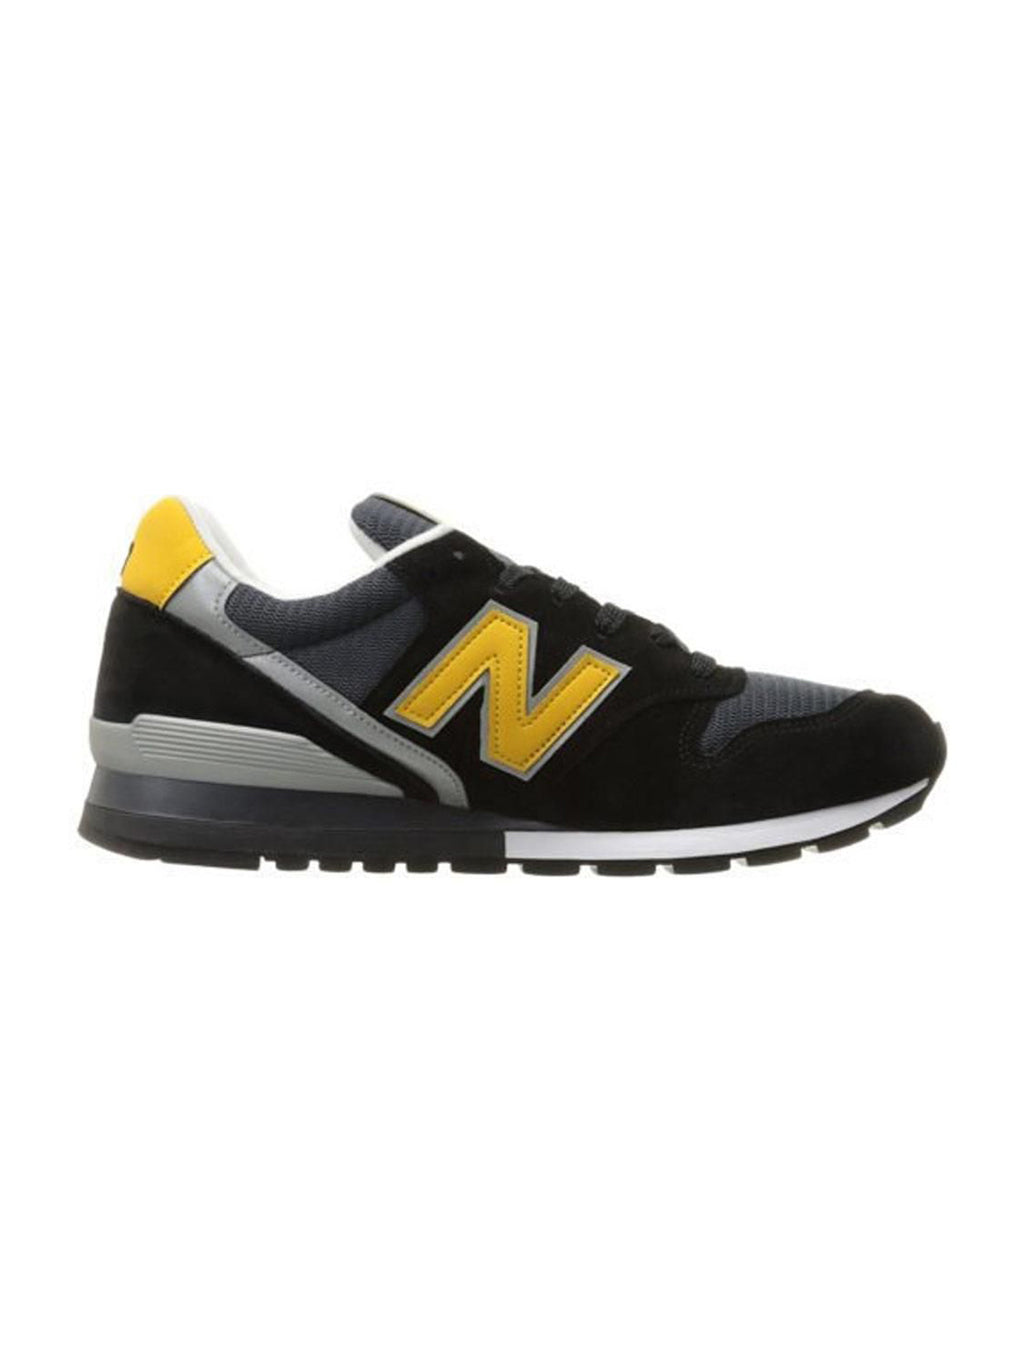 Black & Yellow 996 D Retro Sneakers